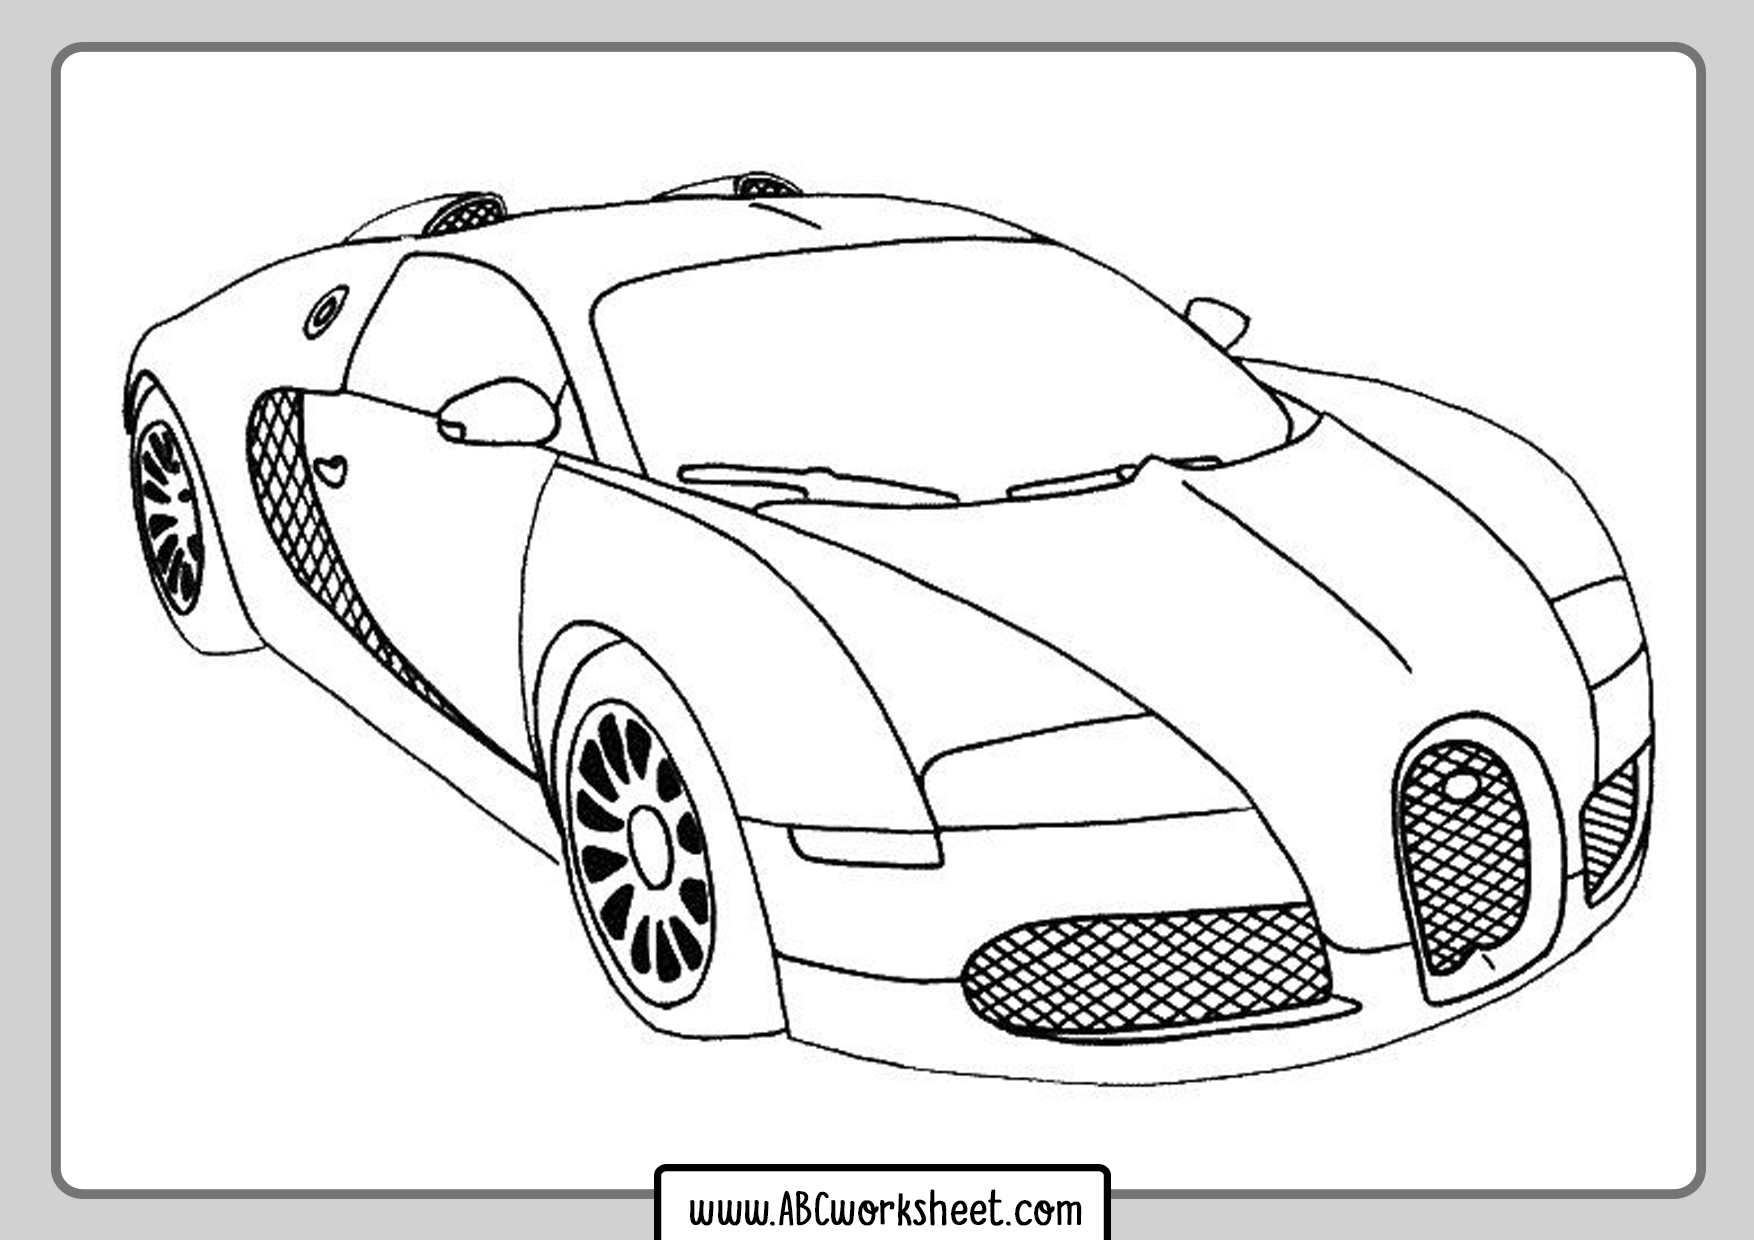 Racing Car To Coloring